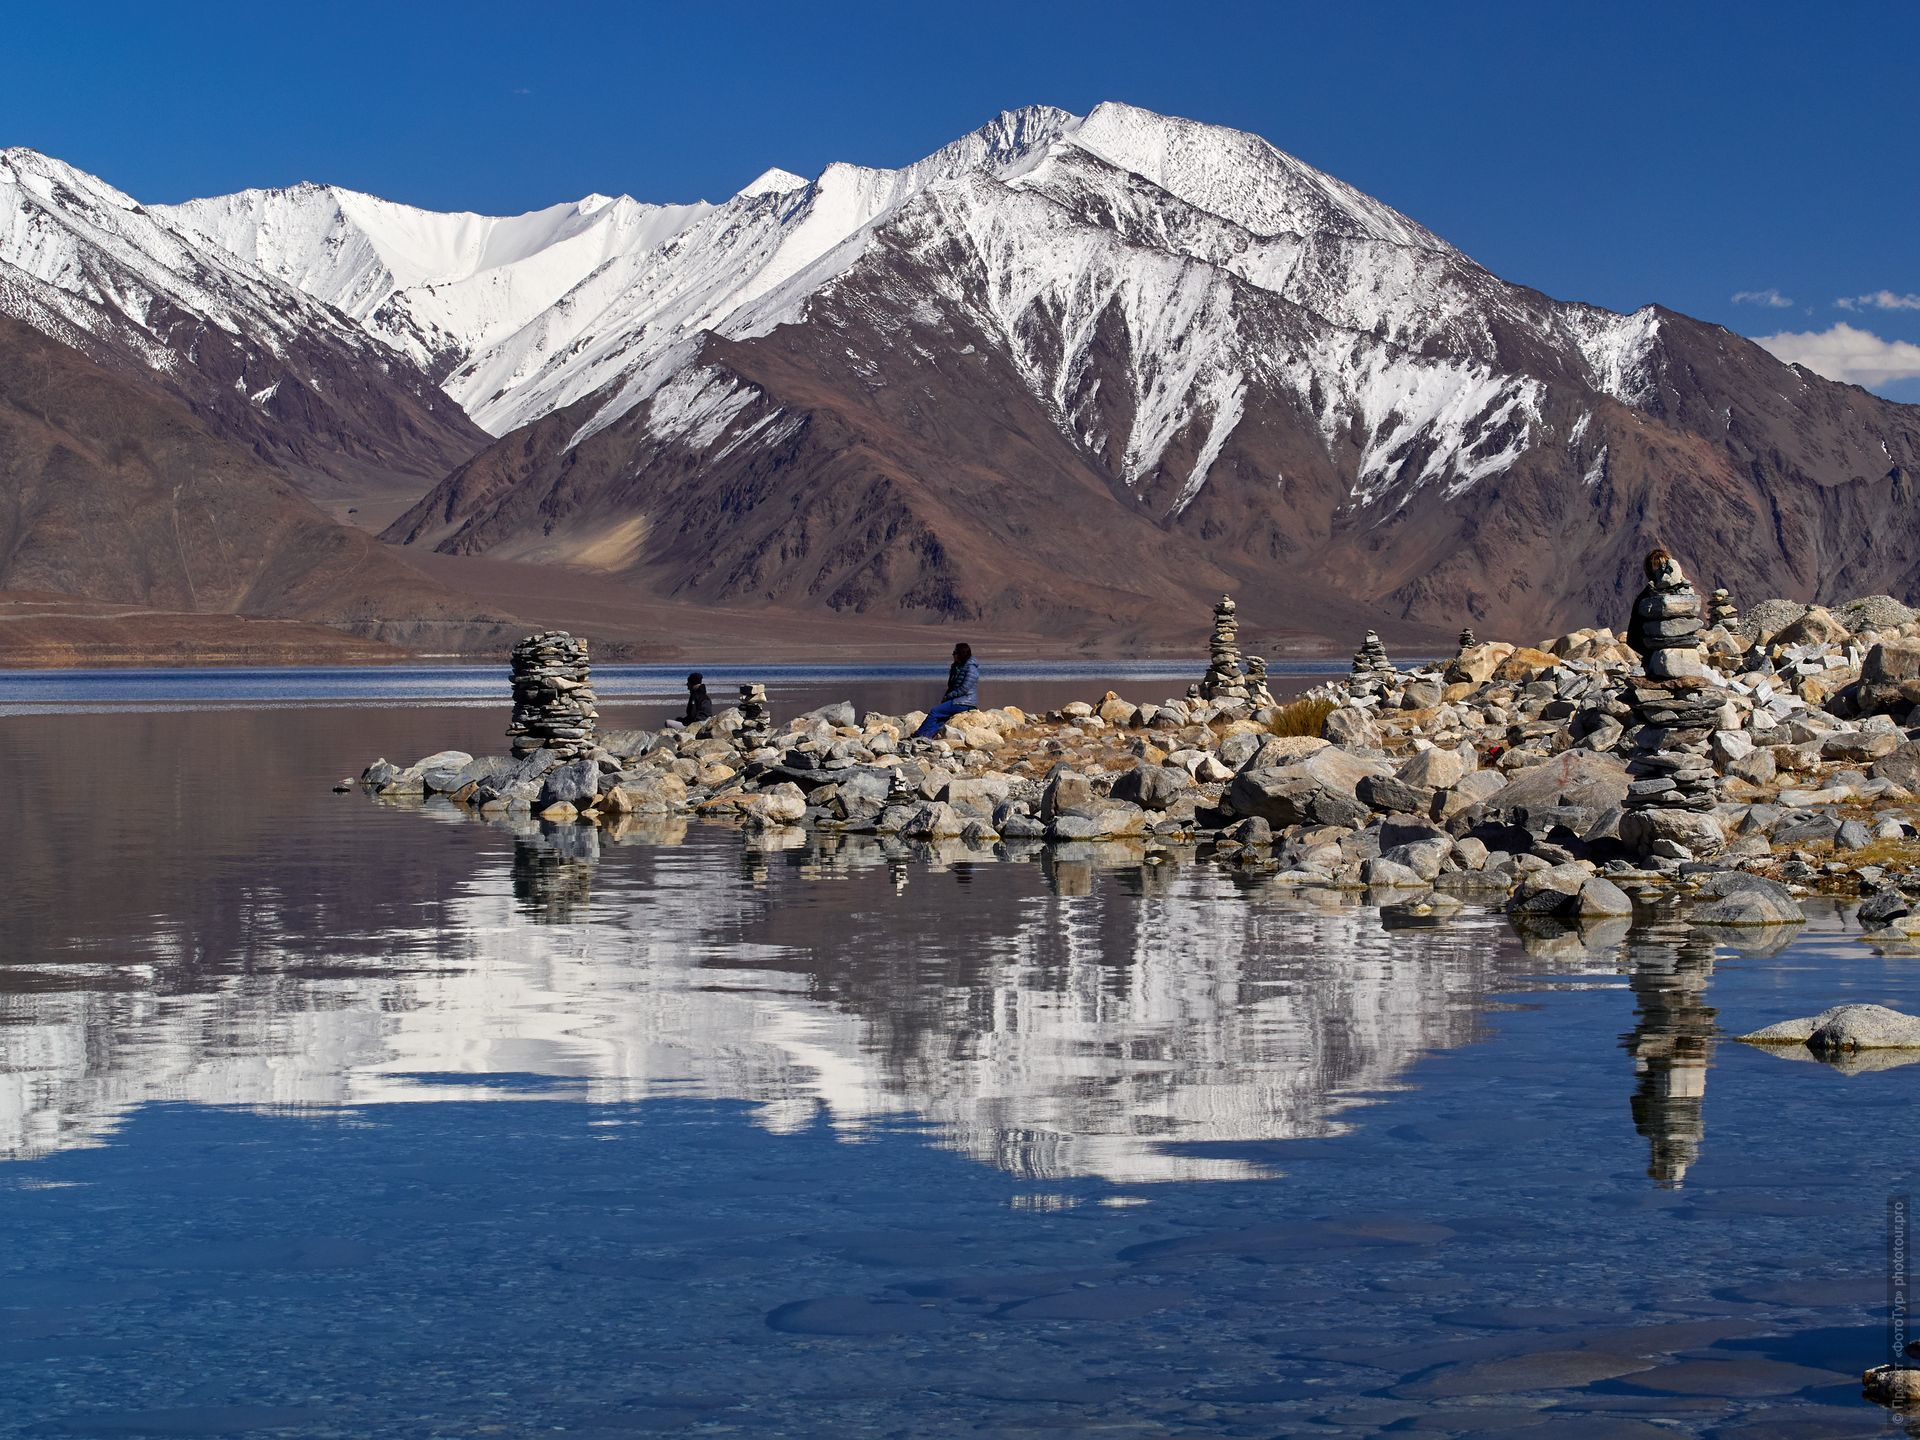 Pangong Tso Lake. Tour Tibet Lakeside Advertising: Alpine lakes, geyser valley, Lamayuru, Colored Mountains, 01 - 10.09. 2021 year.